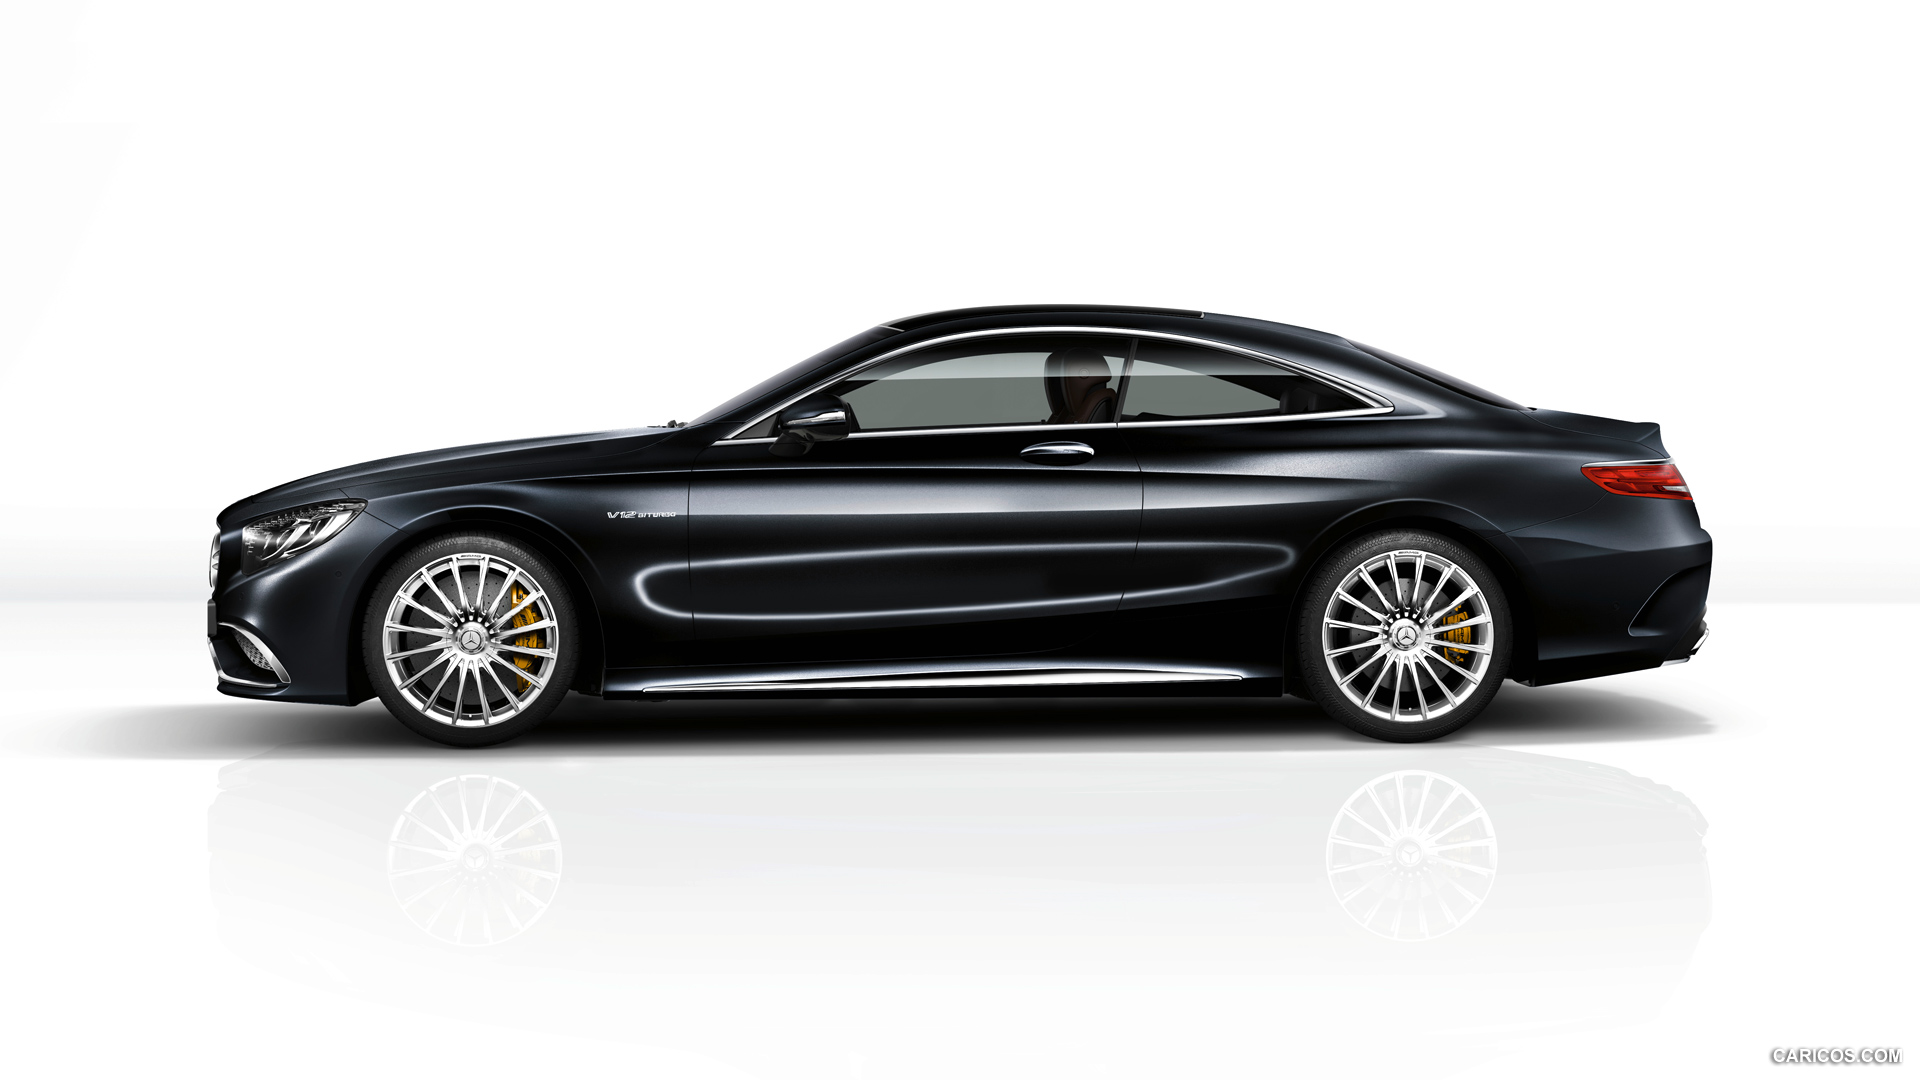 Mercedes-Benz S65 AMG Coupe photo 136332